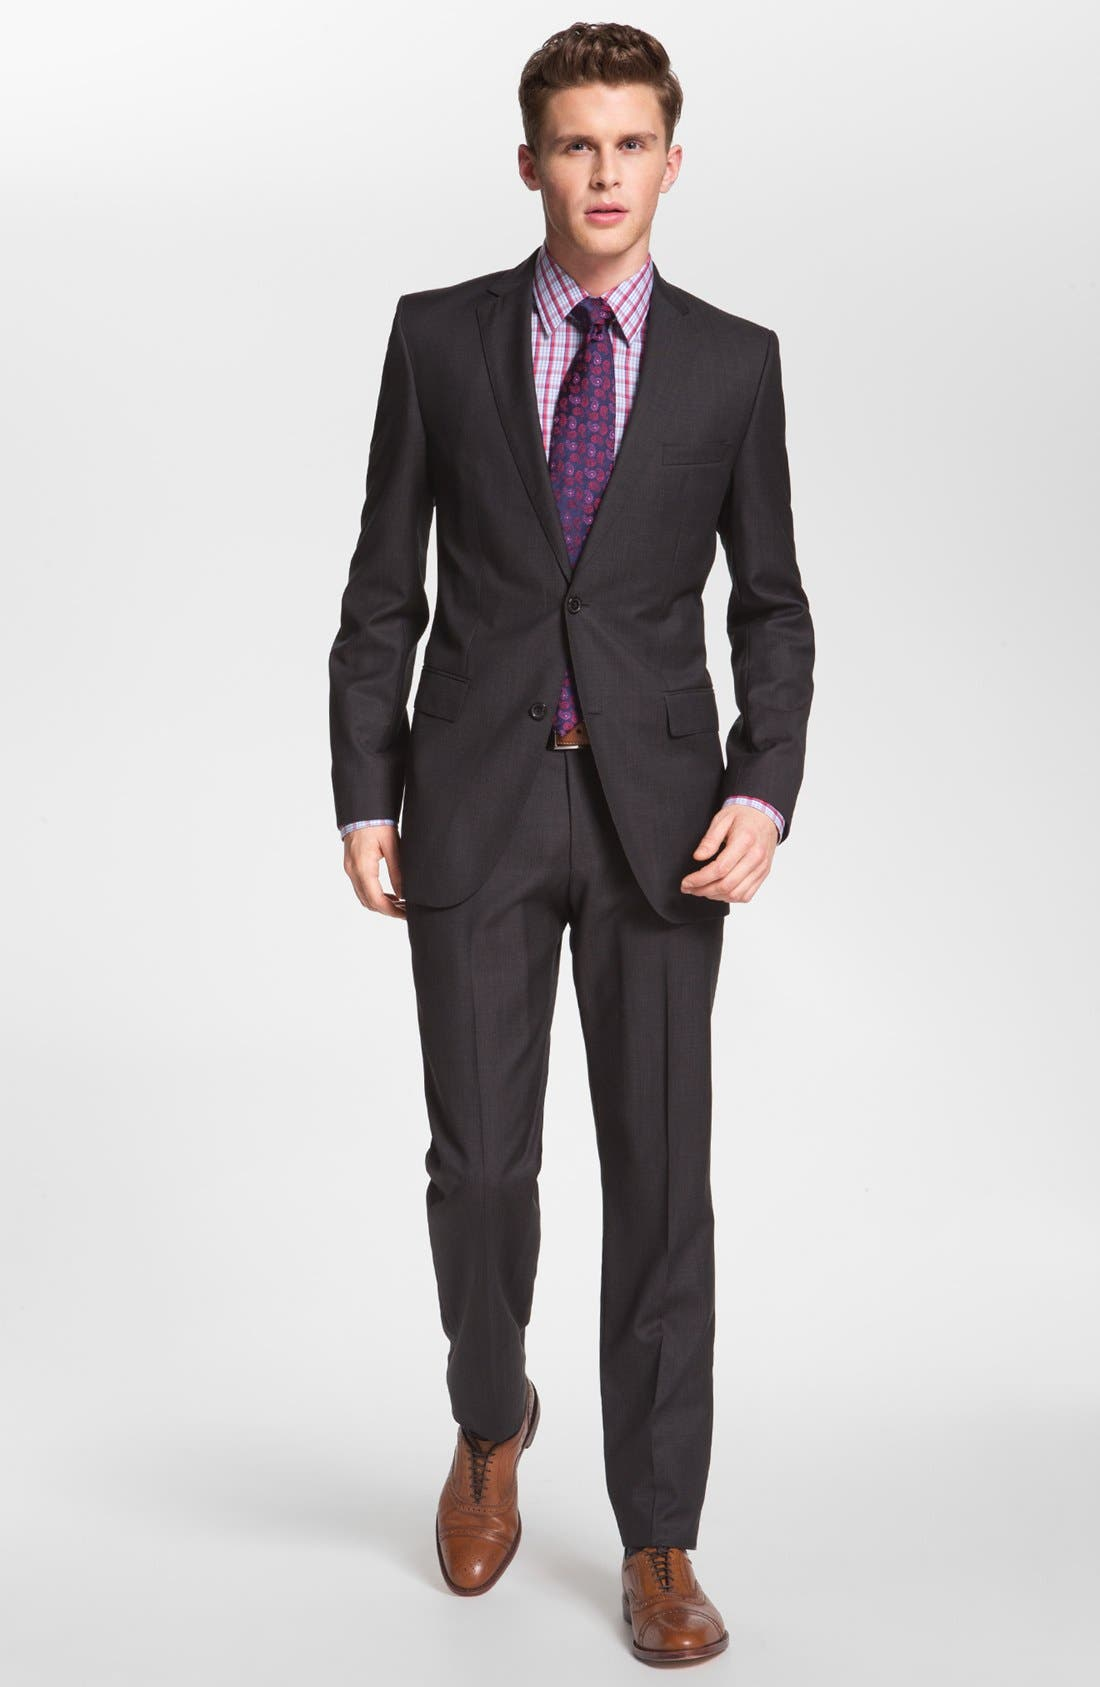 Main Image - BOSS 'Jam/Sharp' Trim Fit Dark Grey Suit